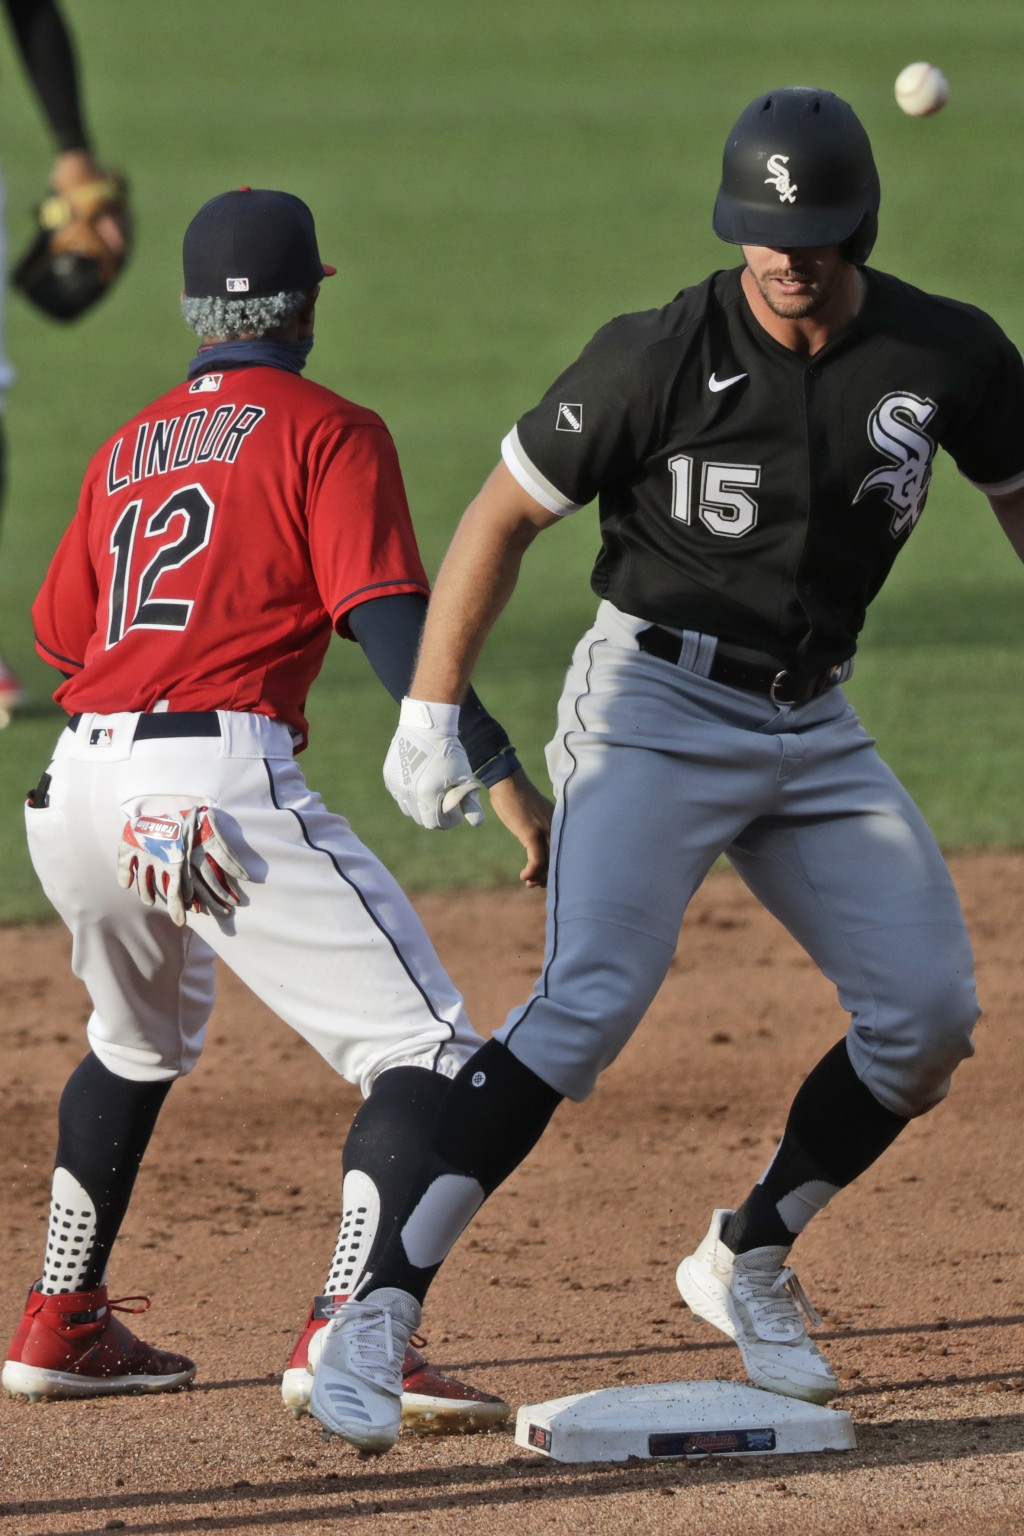 Chicago White Sox's Adam Engel (15) is safe at second base on a double as Cleveland Indians' Francisco Lindor (12) waits for the ball in the sixth inn...